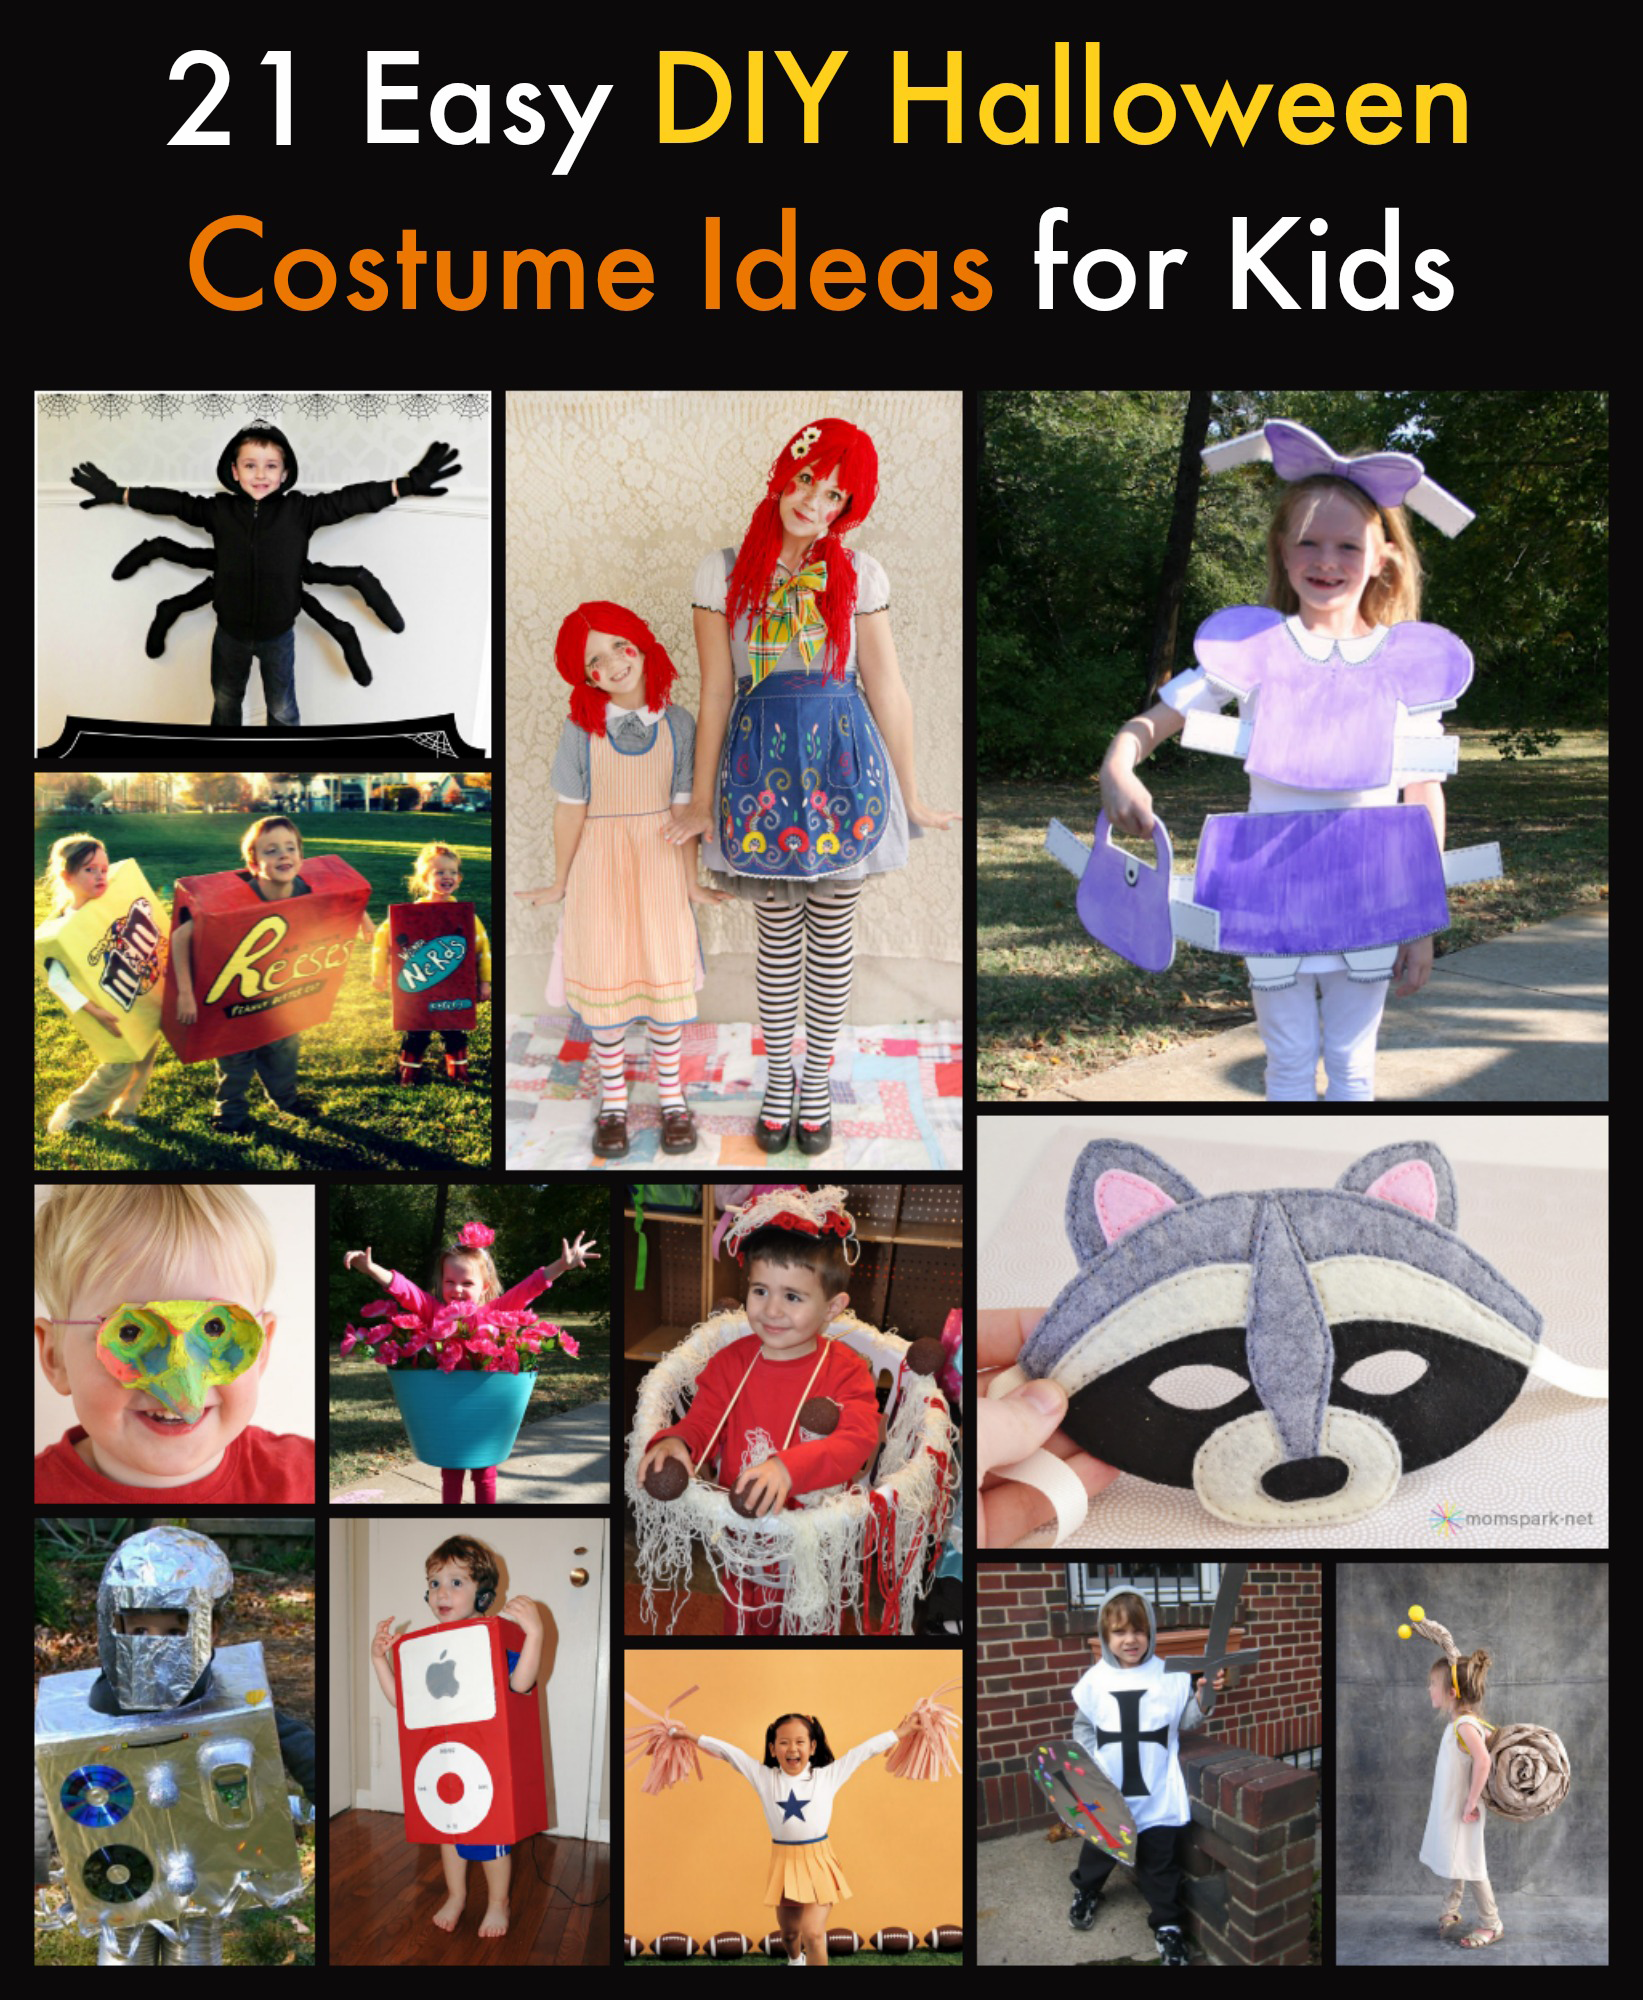 21 easy diy halloween costume ideas for kids for Diy halloween costume ideas for kids